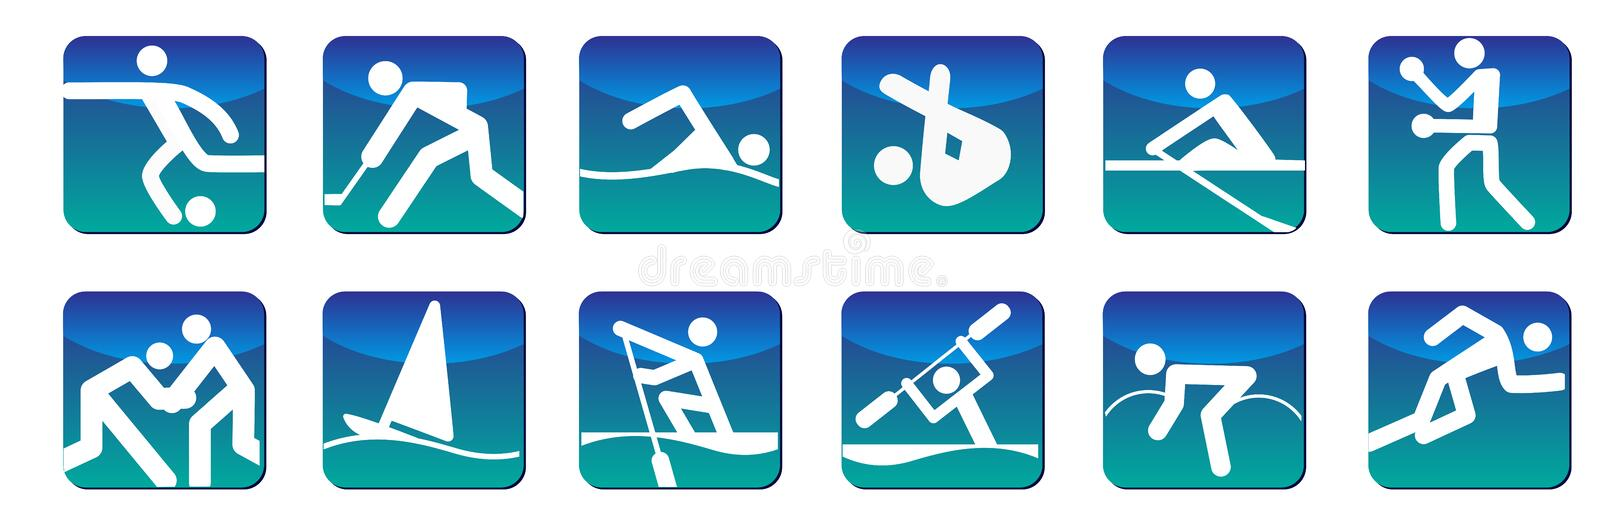 Download Sports icons blue stock vector. Image of kayaking, running - 27195153